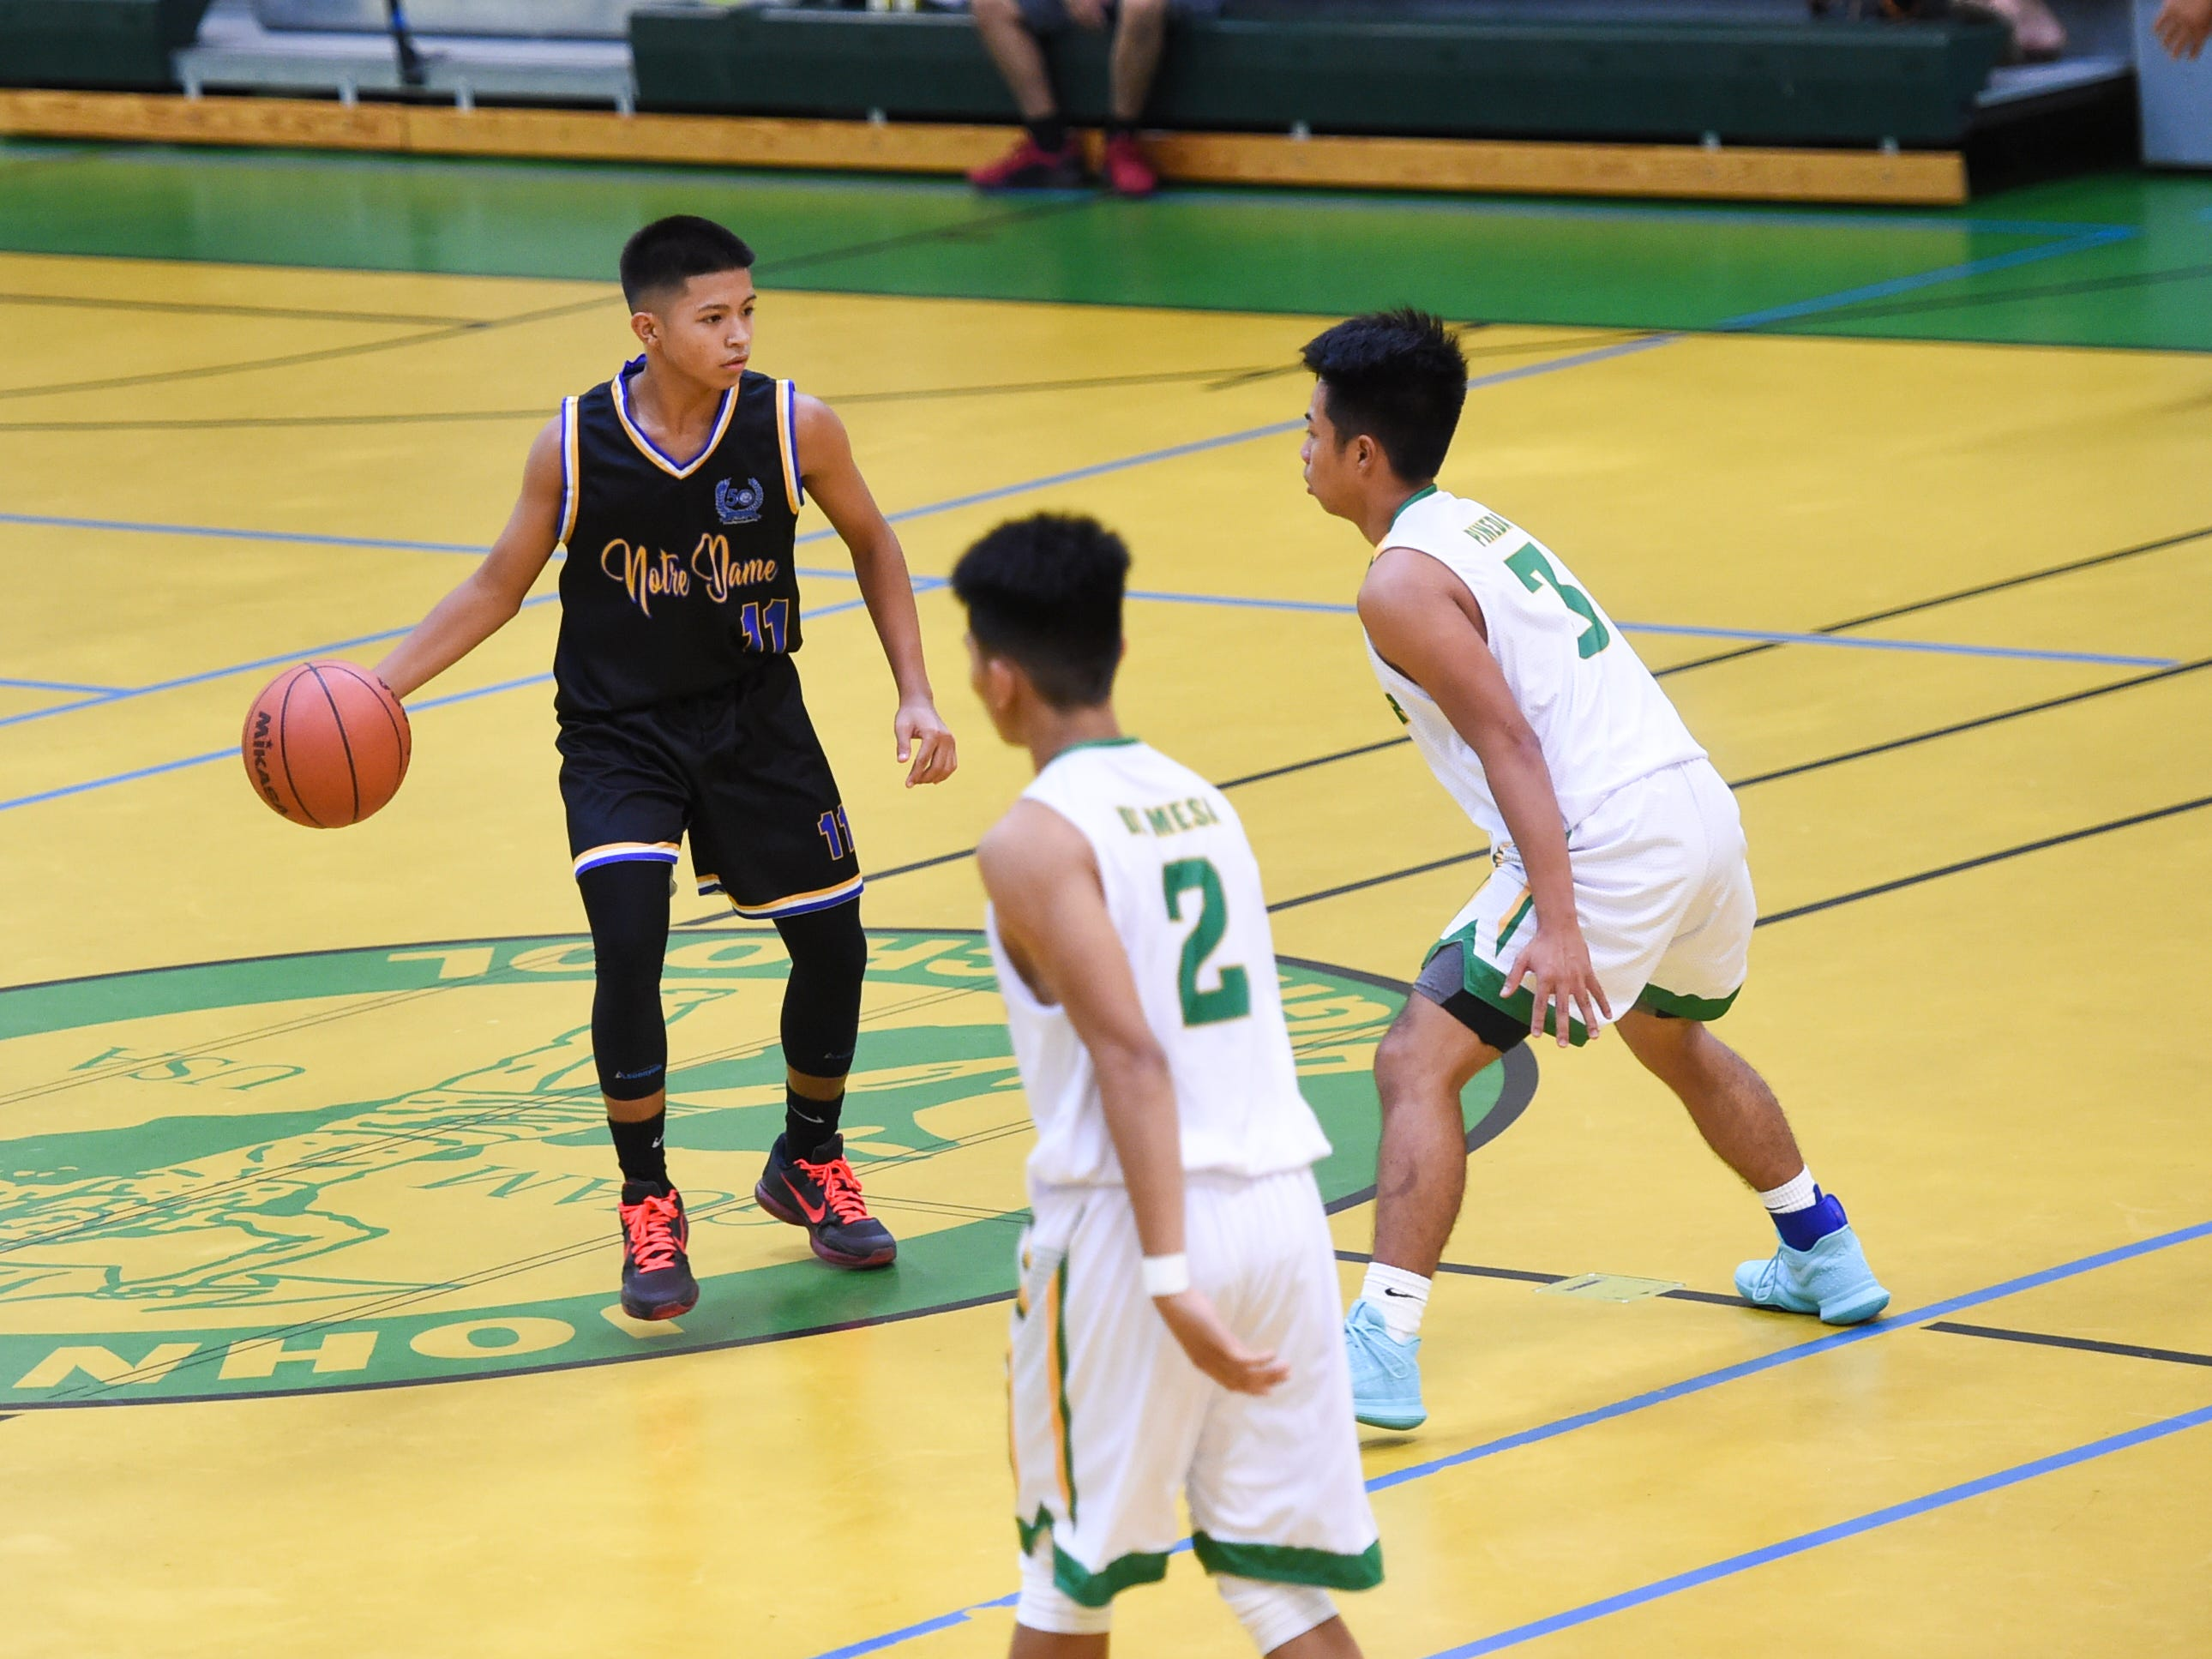 Notre Dame Royal Bryce Chargualaf (11) handles the ball during an Independent Interscholastic Athletic Association of Guam Boys' Basketball game at the John F. Kennedy High School Gym, Feb. 2, 2019.